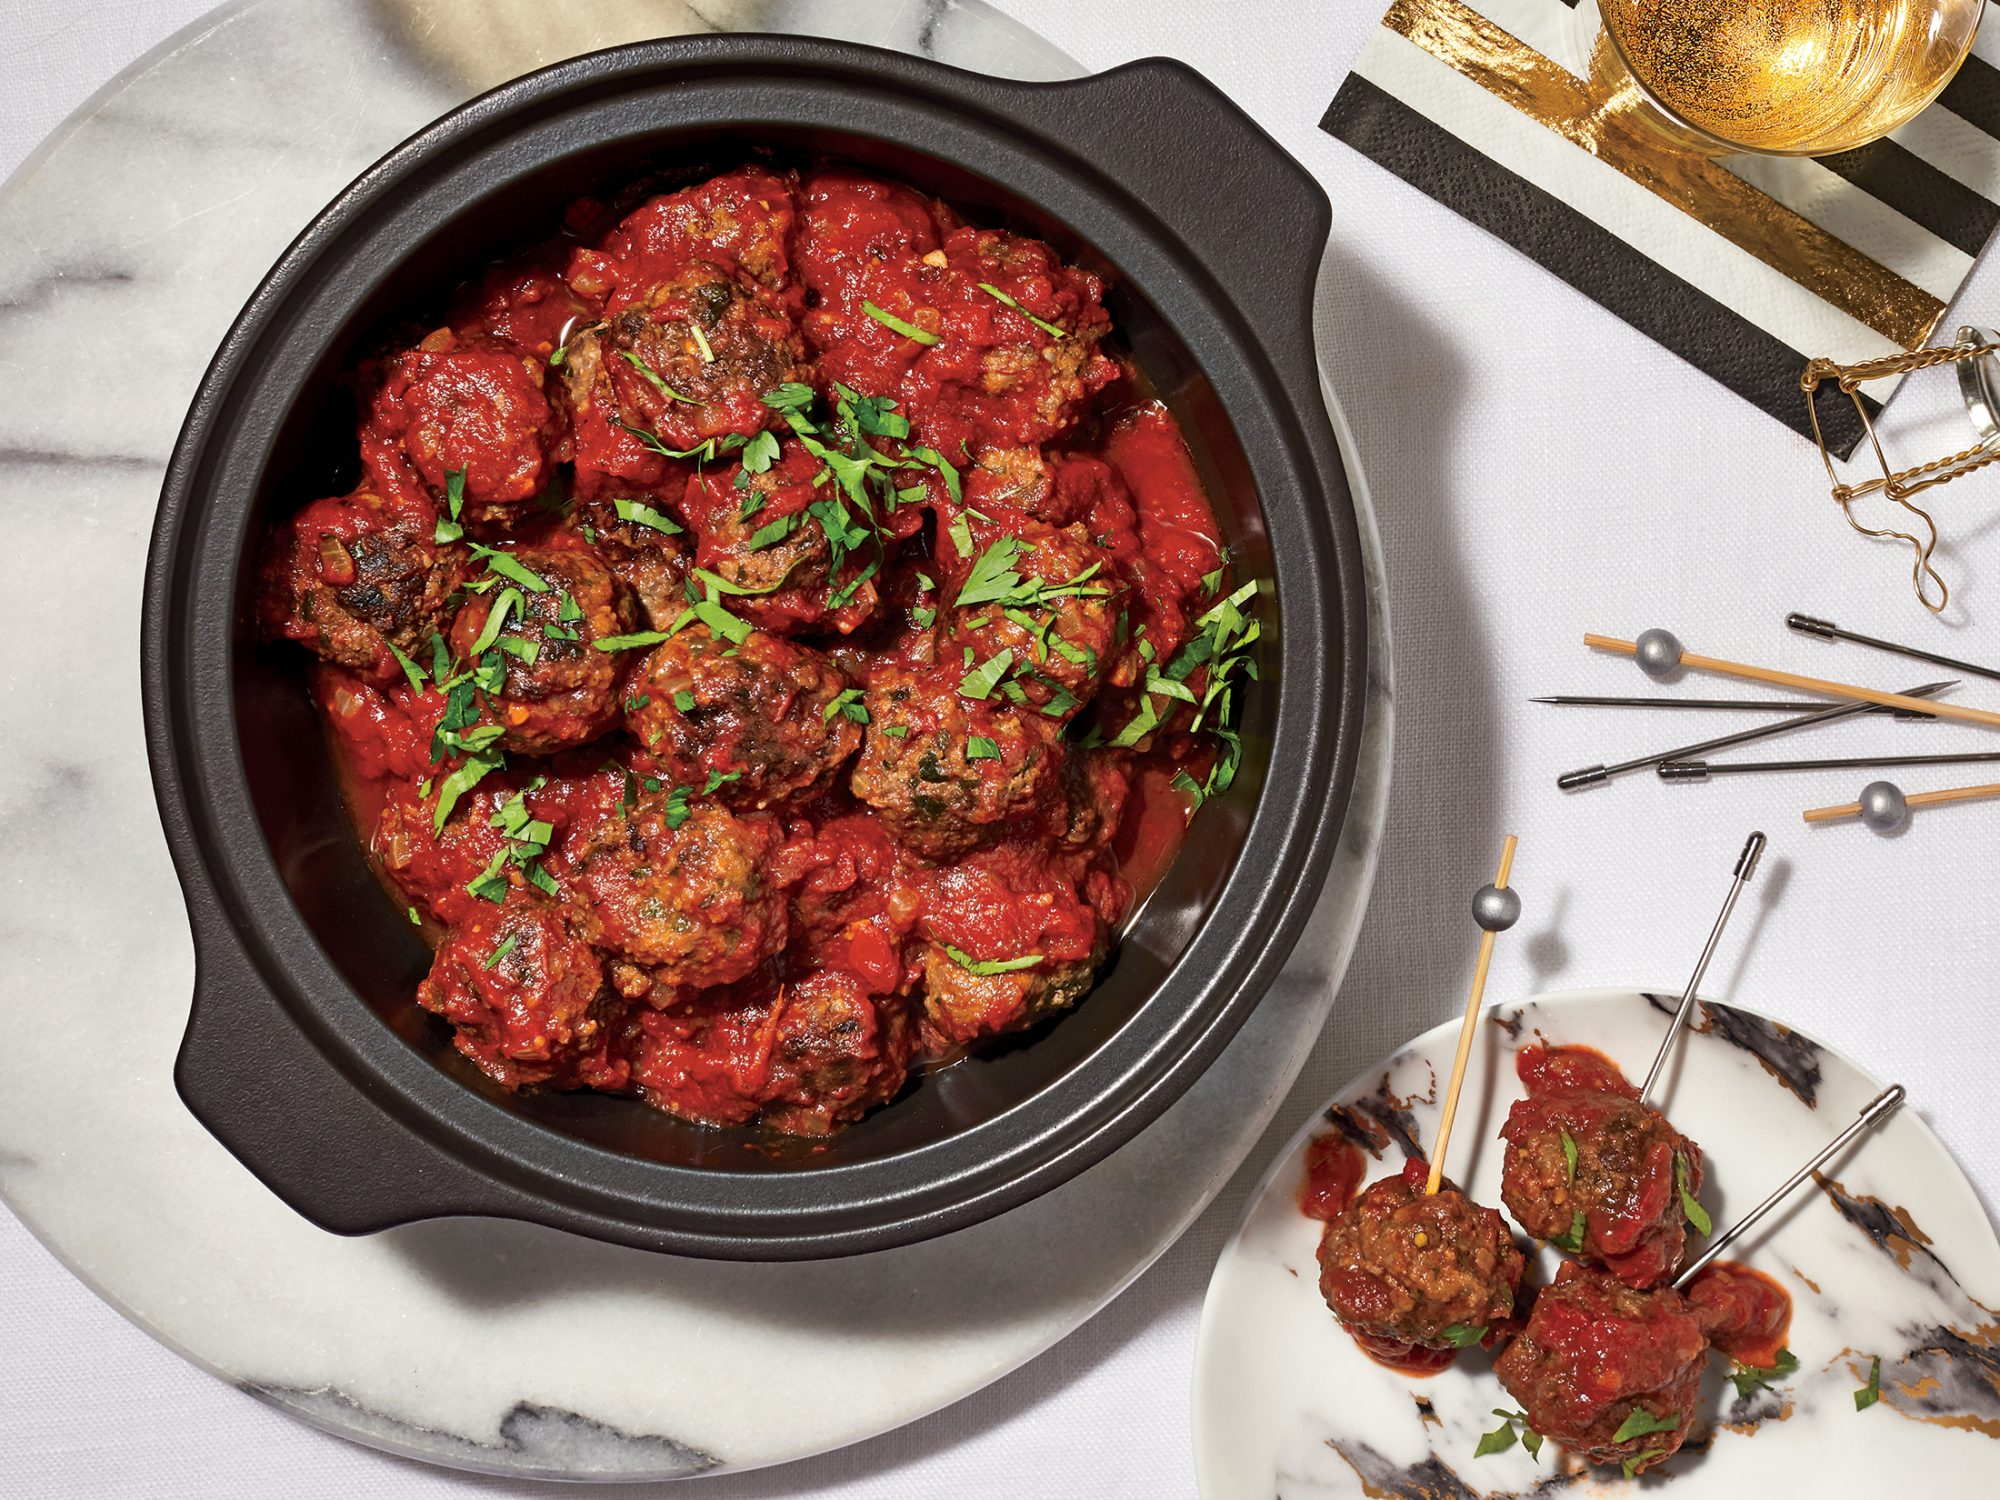 Saucy Mini Meatballs